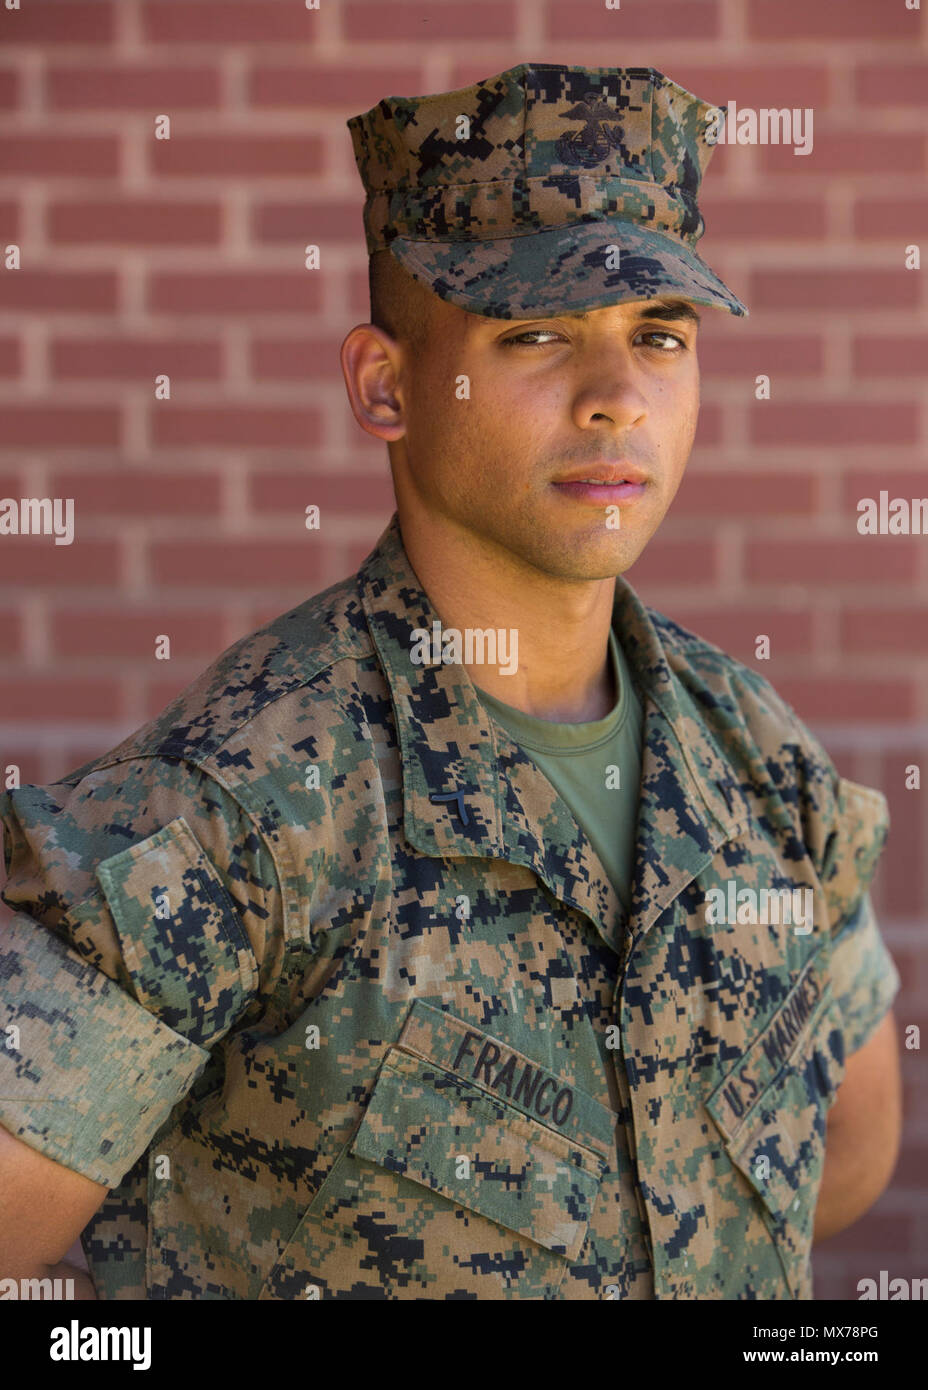 Pfc. Andres E. Franco, Platoon 2034, Fox Company, 2nd Recruit Training Battalion, earned U.S. citizenship May 4, 2017, on Parris Island, S.C. Before earning citizenship, applicants must demonstrate knowledge of the English language and American government, show good moral character and take the Oath of Allegiance to the U.S. Constitution. Franco, from Miami, originally from Honduras, is scheduled to graduate May 5, 2017. - Stock Image